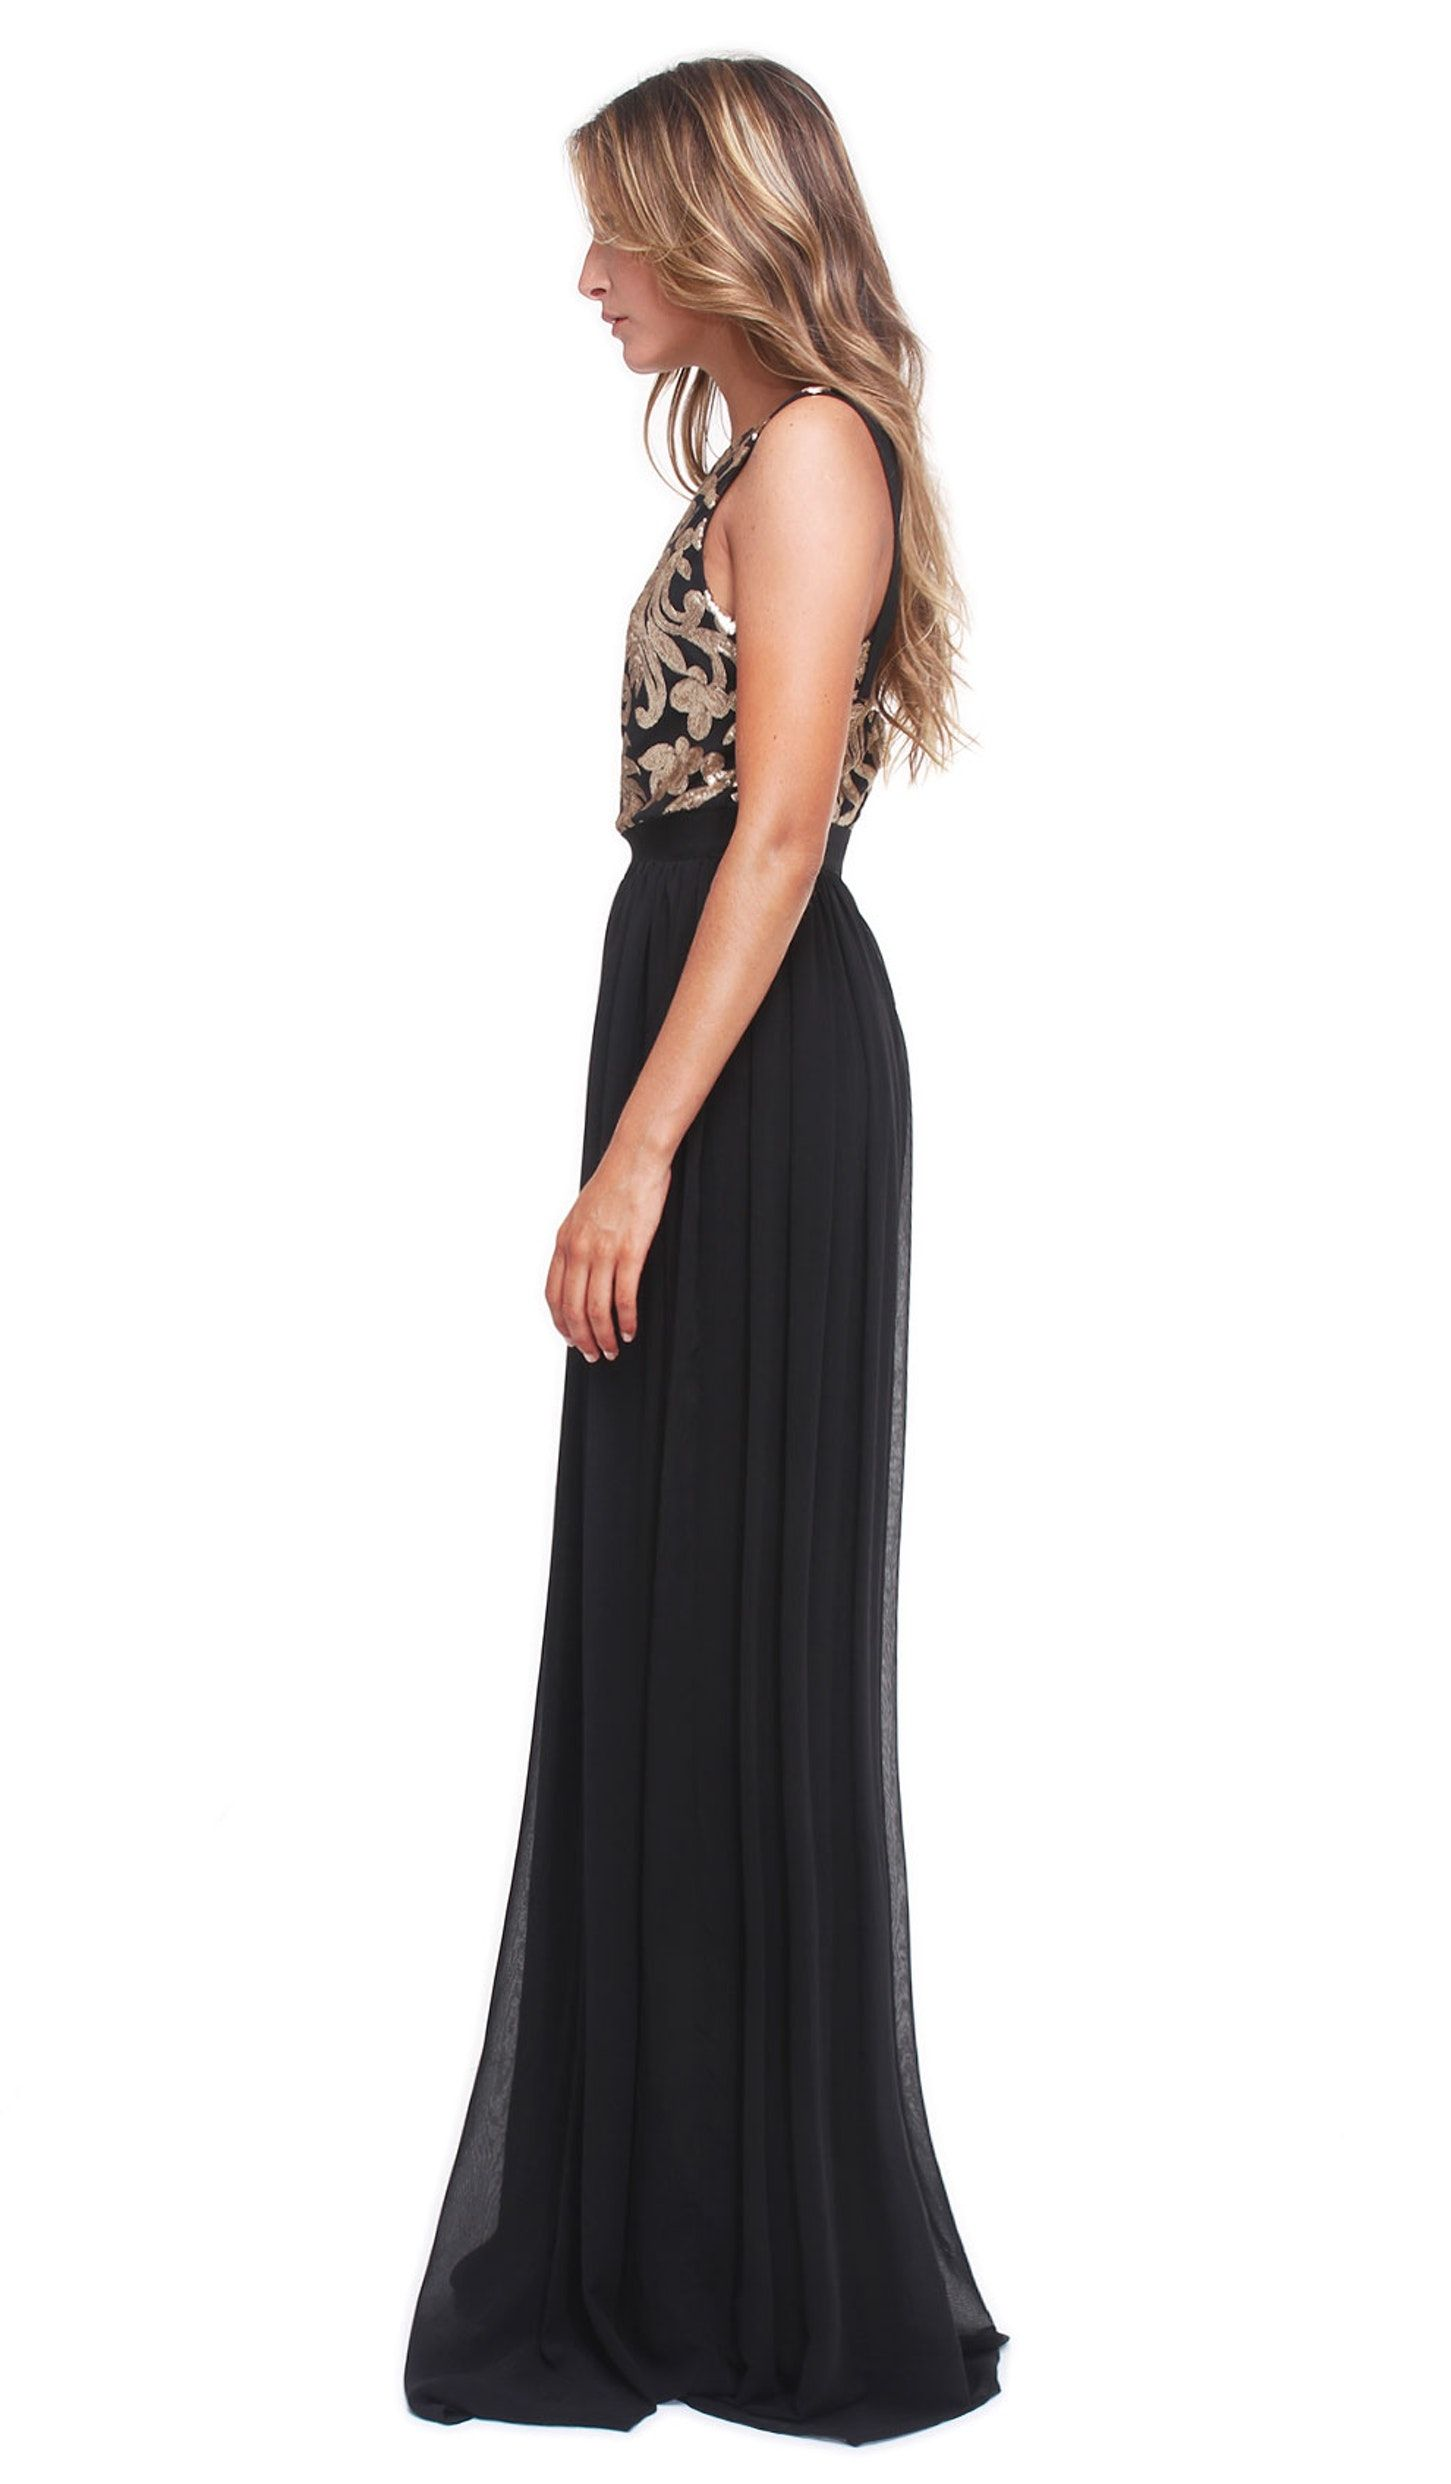 Black and gold gown hire four flavor extra long dresses